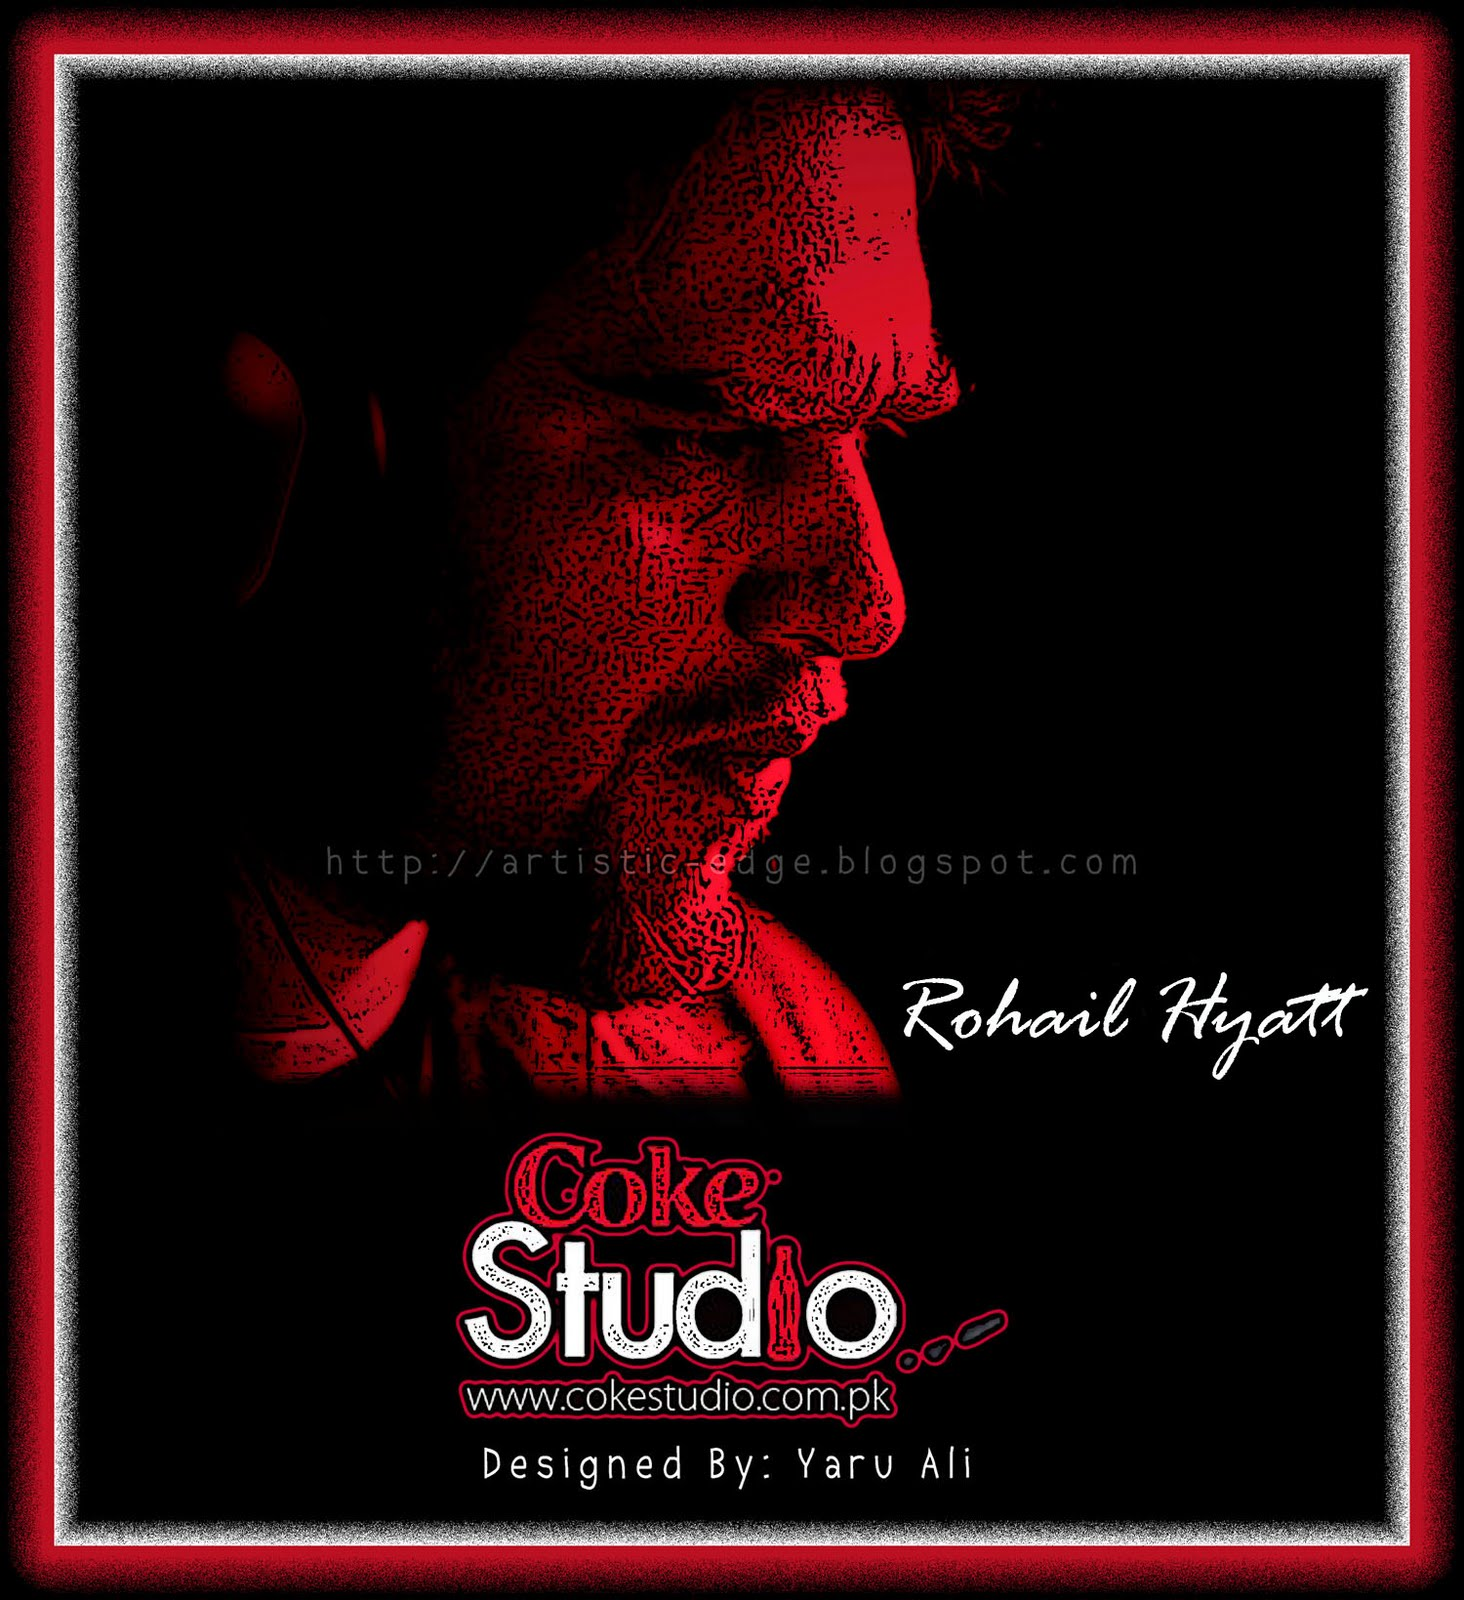 Coke Studio | Artistic Edge